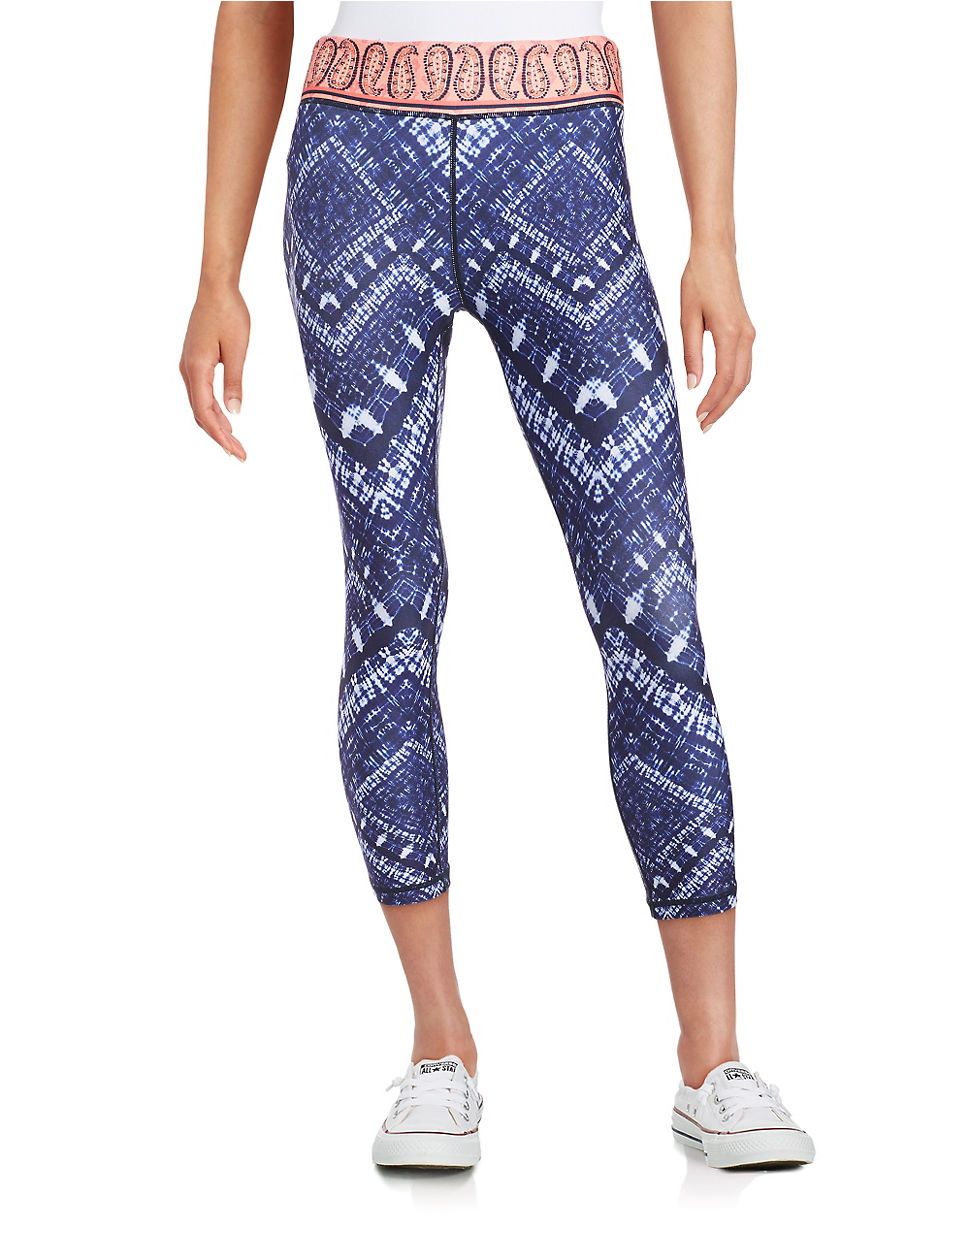 Nanette lepore Patterned Yoga Pants in Blue | Lyst